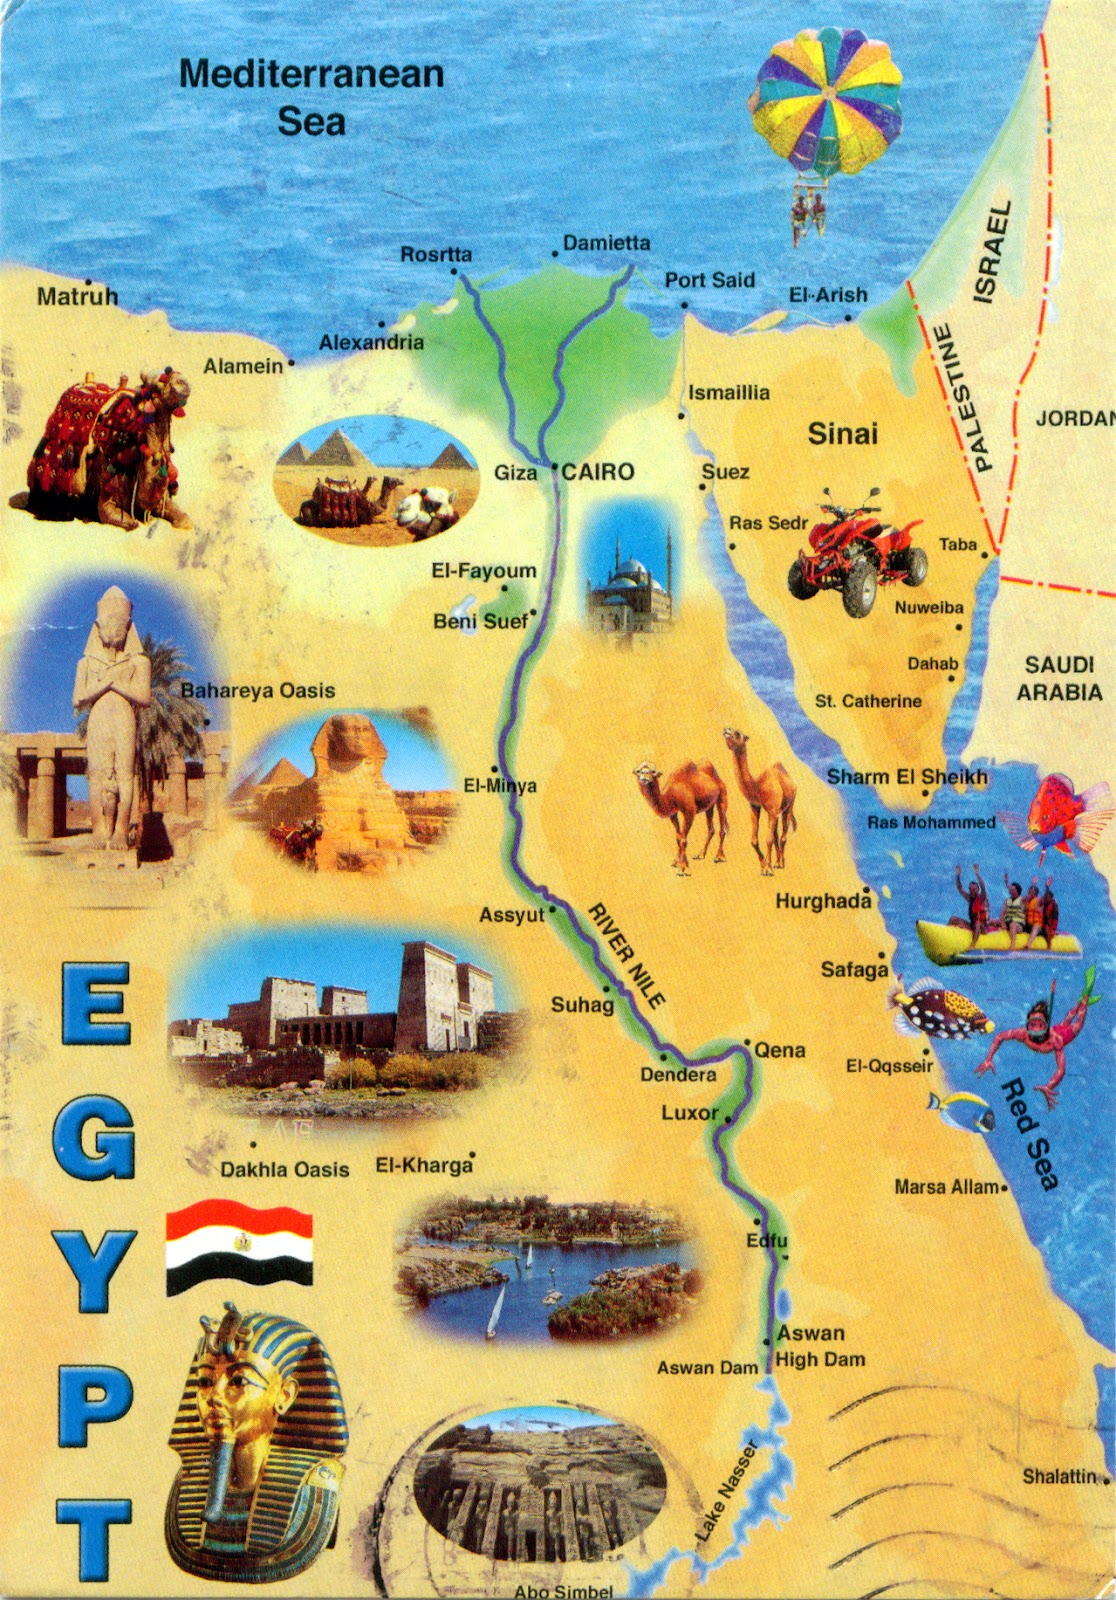 Egypt Map Showing Pyramids - Map of egypt pyramids